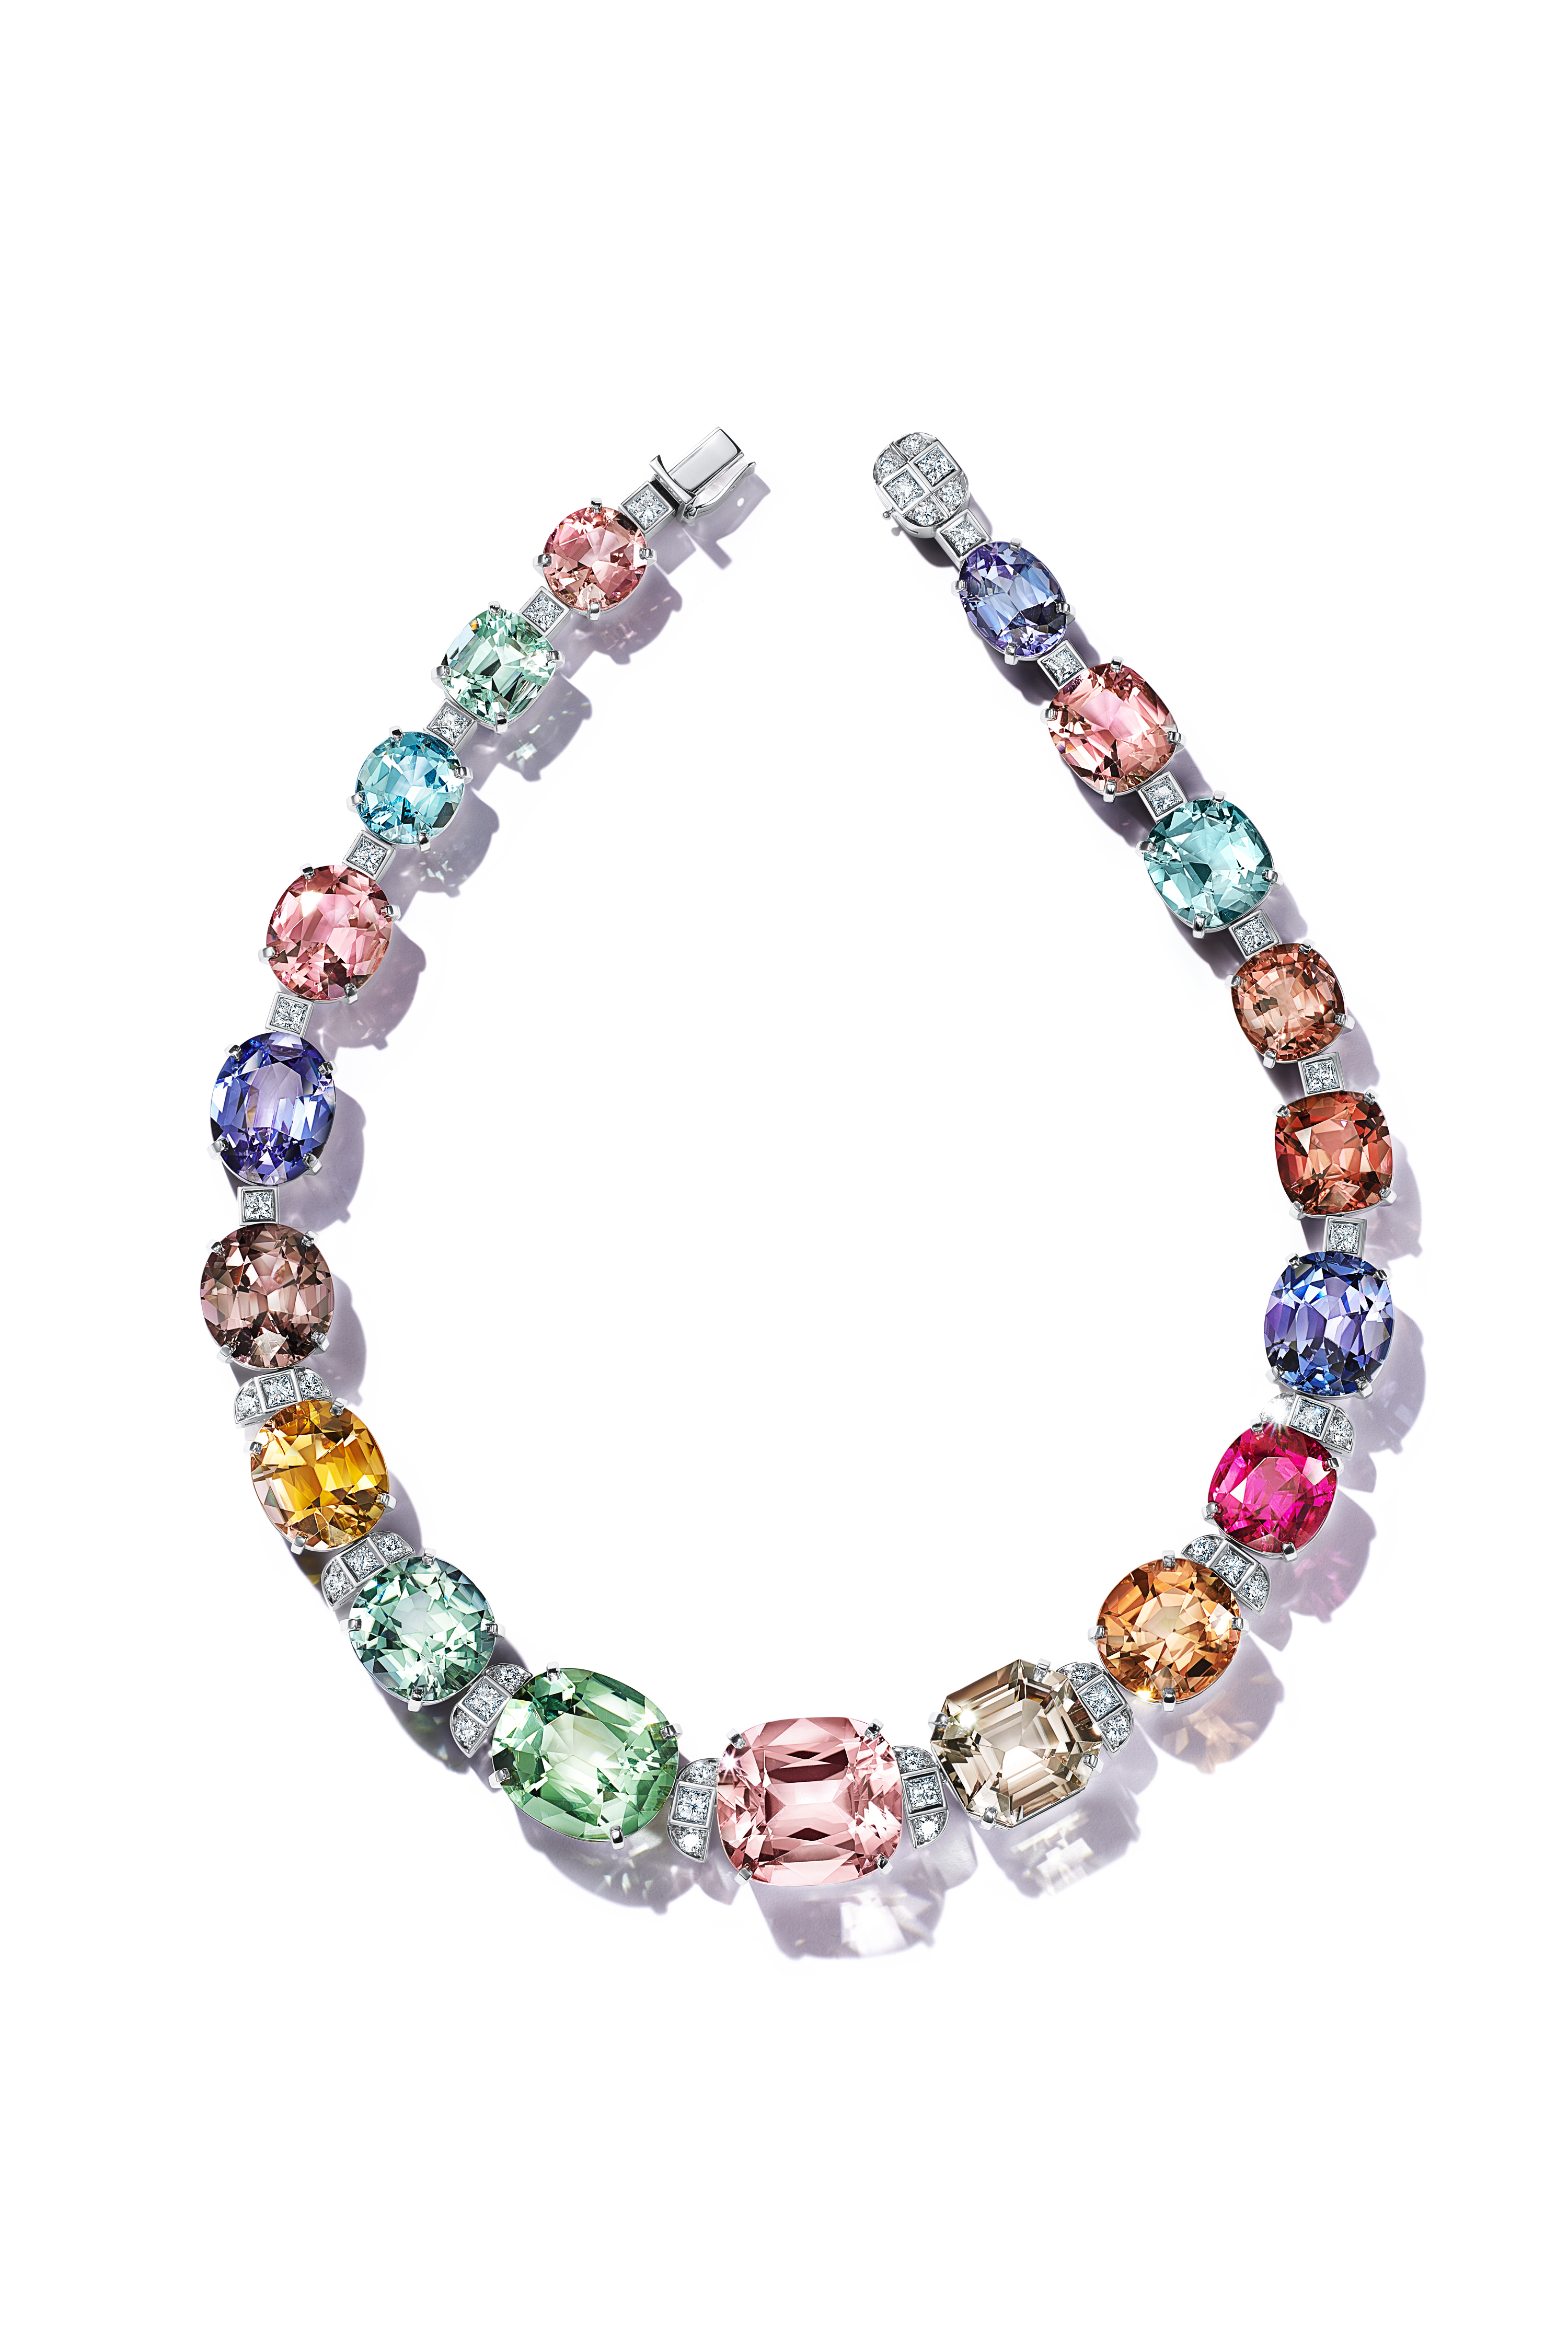 A Tiffany & Co. necklace with aquamarines, tanzanites; pink, orange and green tourmalines; a rubellite, and a morganite.